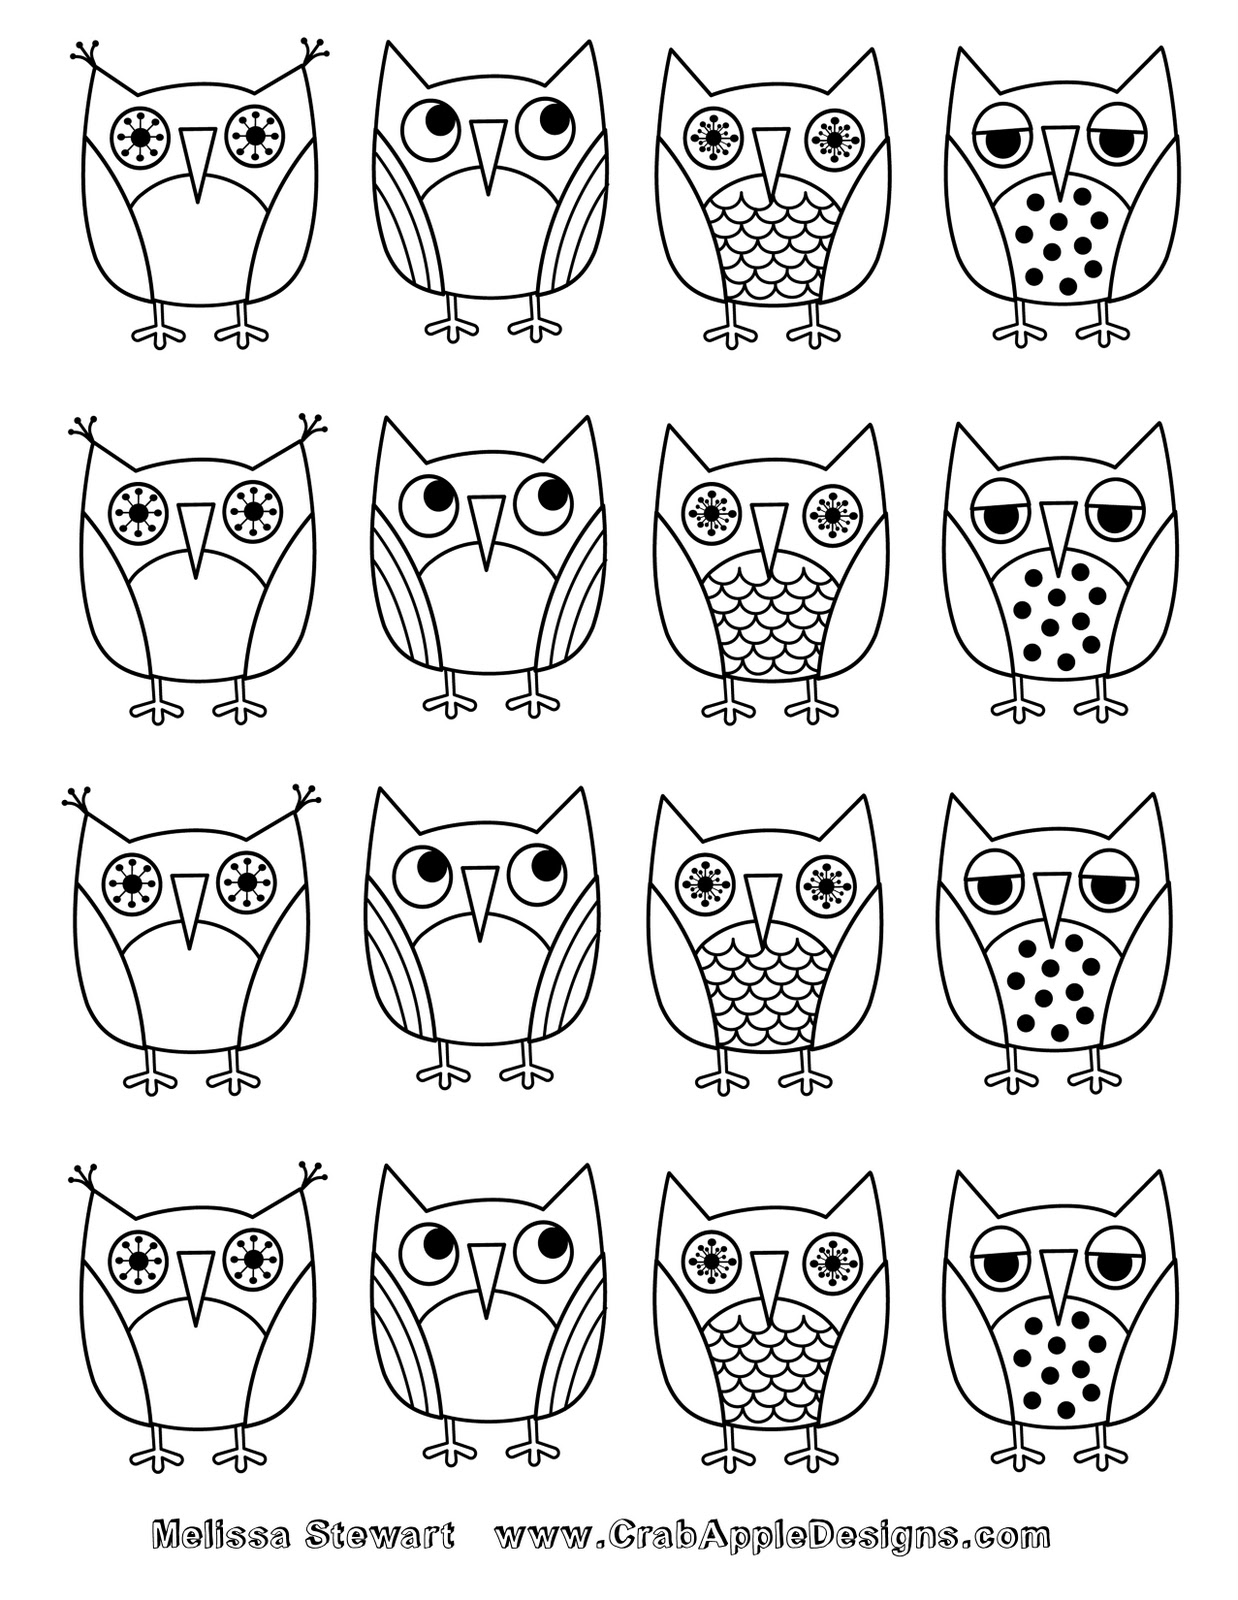 at home with crab apple designs owls coloring page day 7 of 7